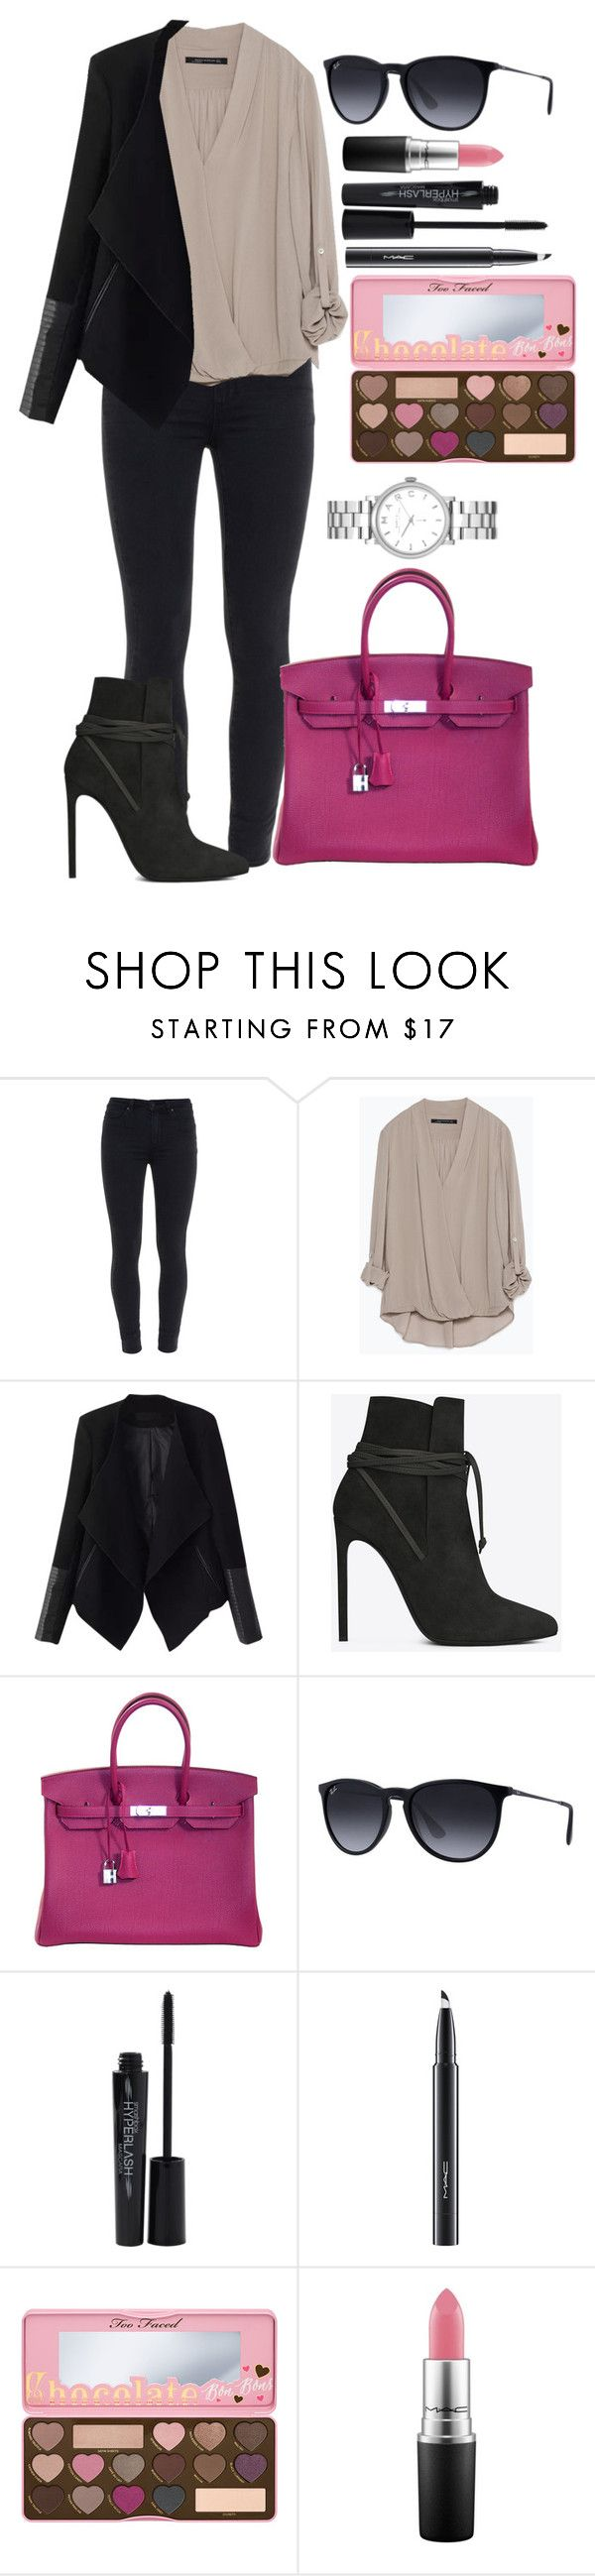 """Untitled #1350"" by fabianarveloc on Polyvore featuring Paige Denim, Zara, Relaxfeel, Yves Saint Laurent, Hermès, Ray-Ban, Smashbox, MAC Cosmetics, Marc by Marc Jacobs and women's clothing"